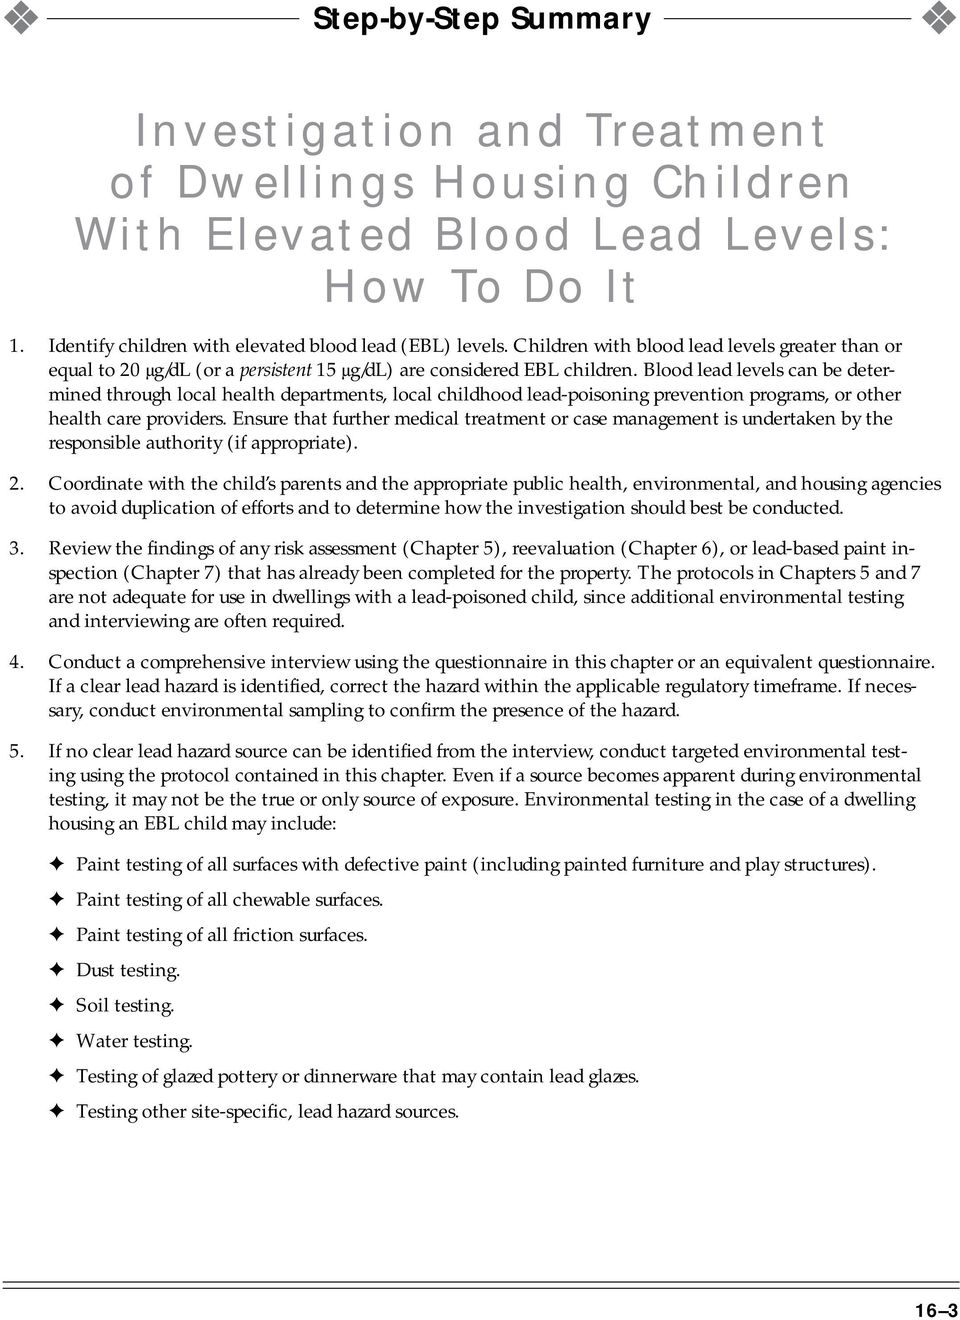 Blood lead levels can be determined through local health departments, local childhood lead-poisoning prevention programs, or other health care providers.